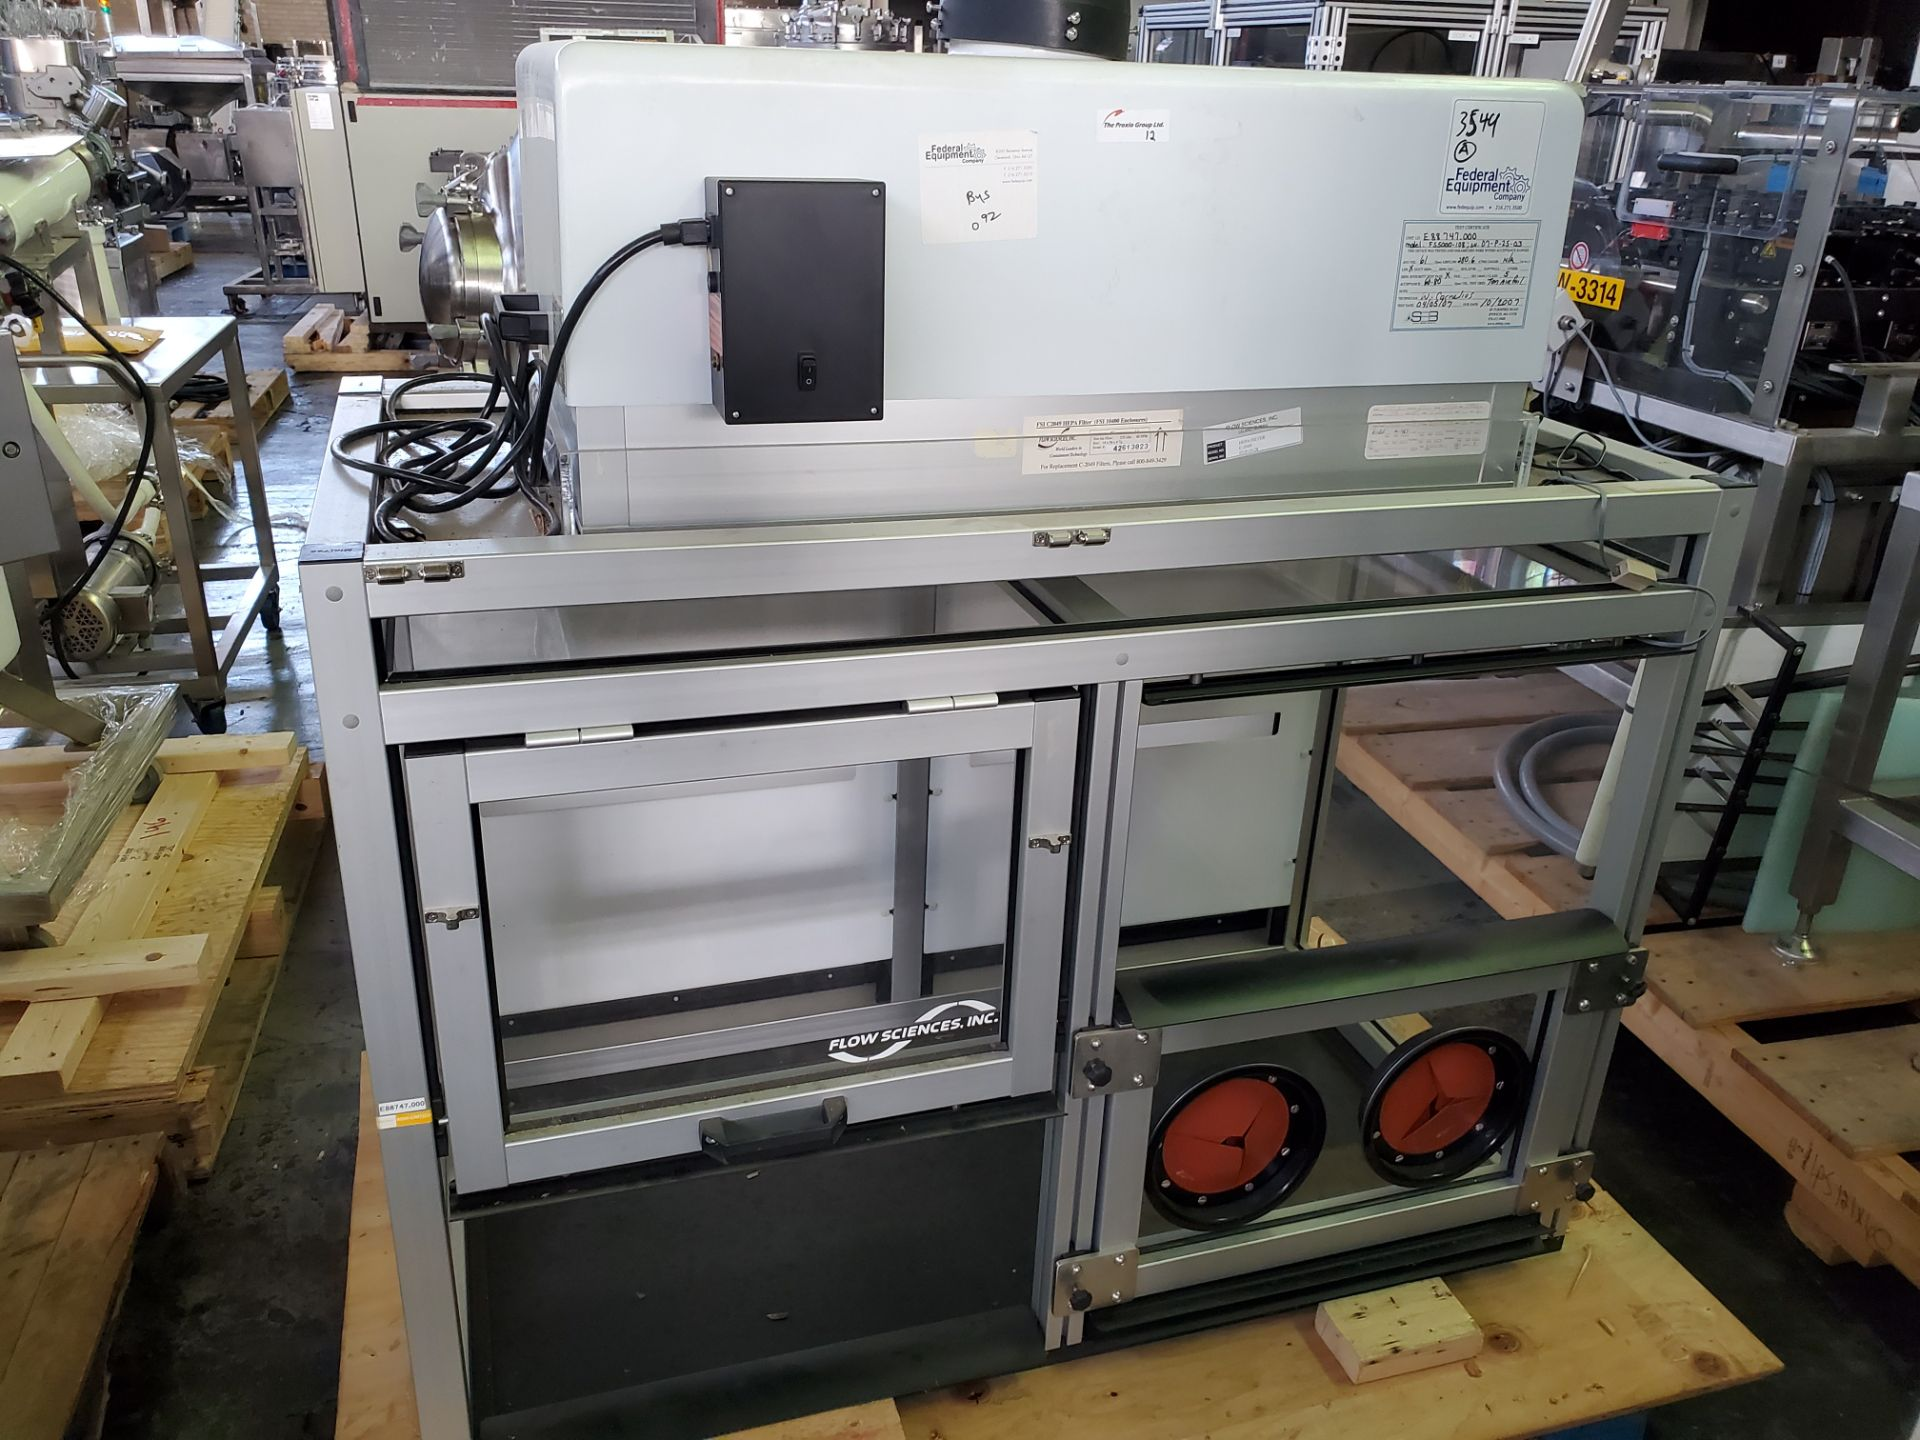 Flow Sciences HEPA Flow Hood/Glovebox, enclosure model FS5000-108 - Image 2 of 10